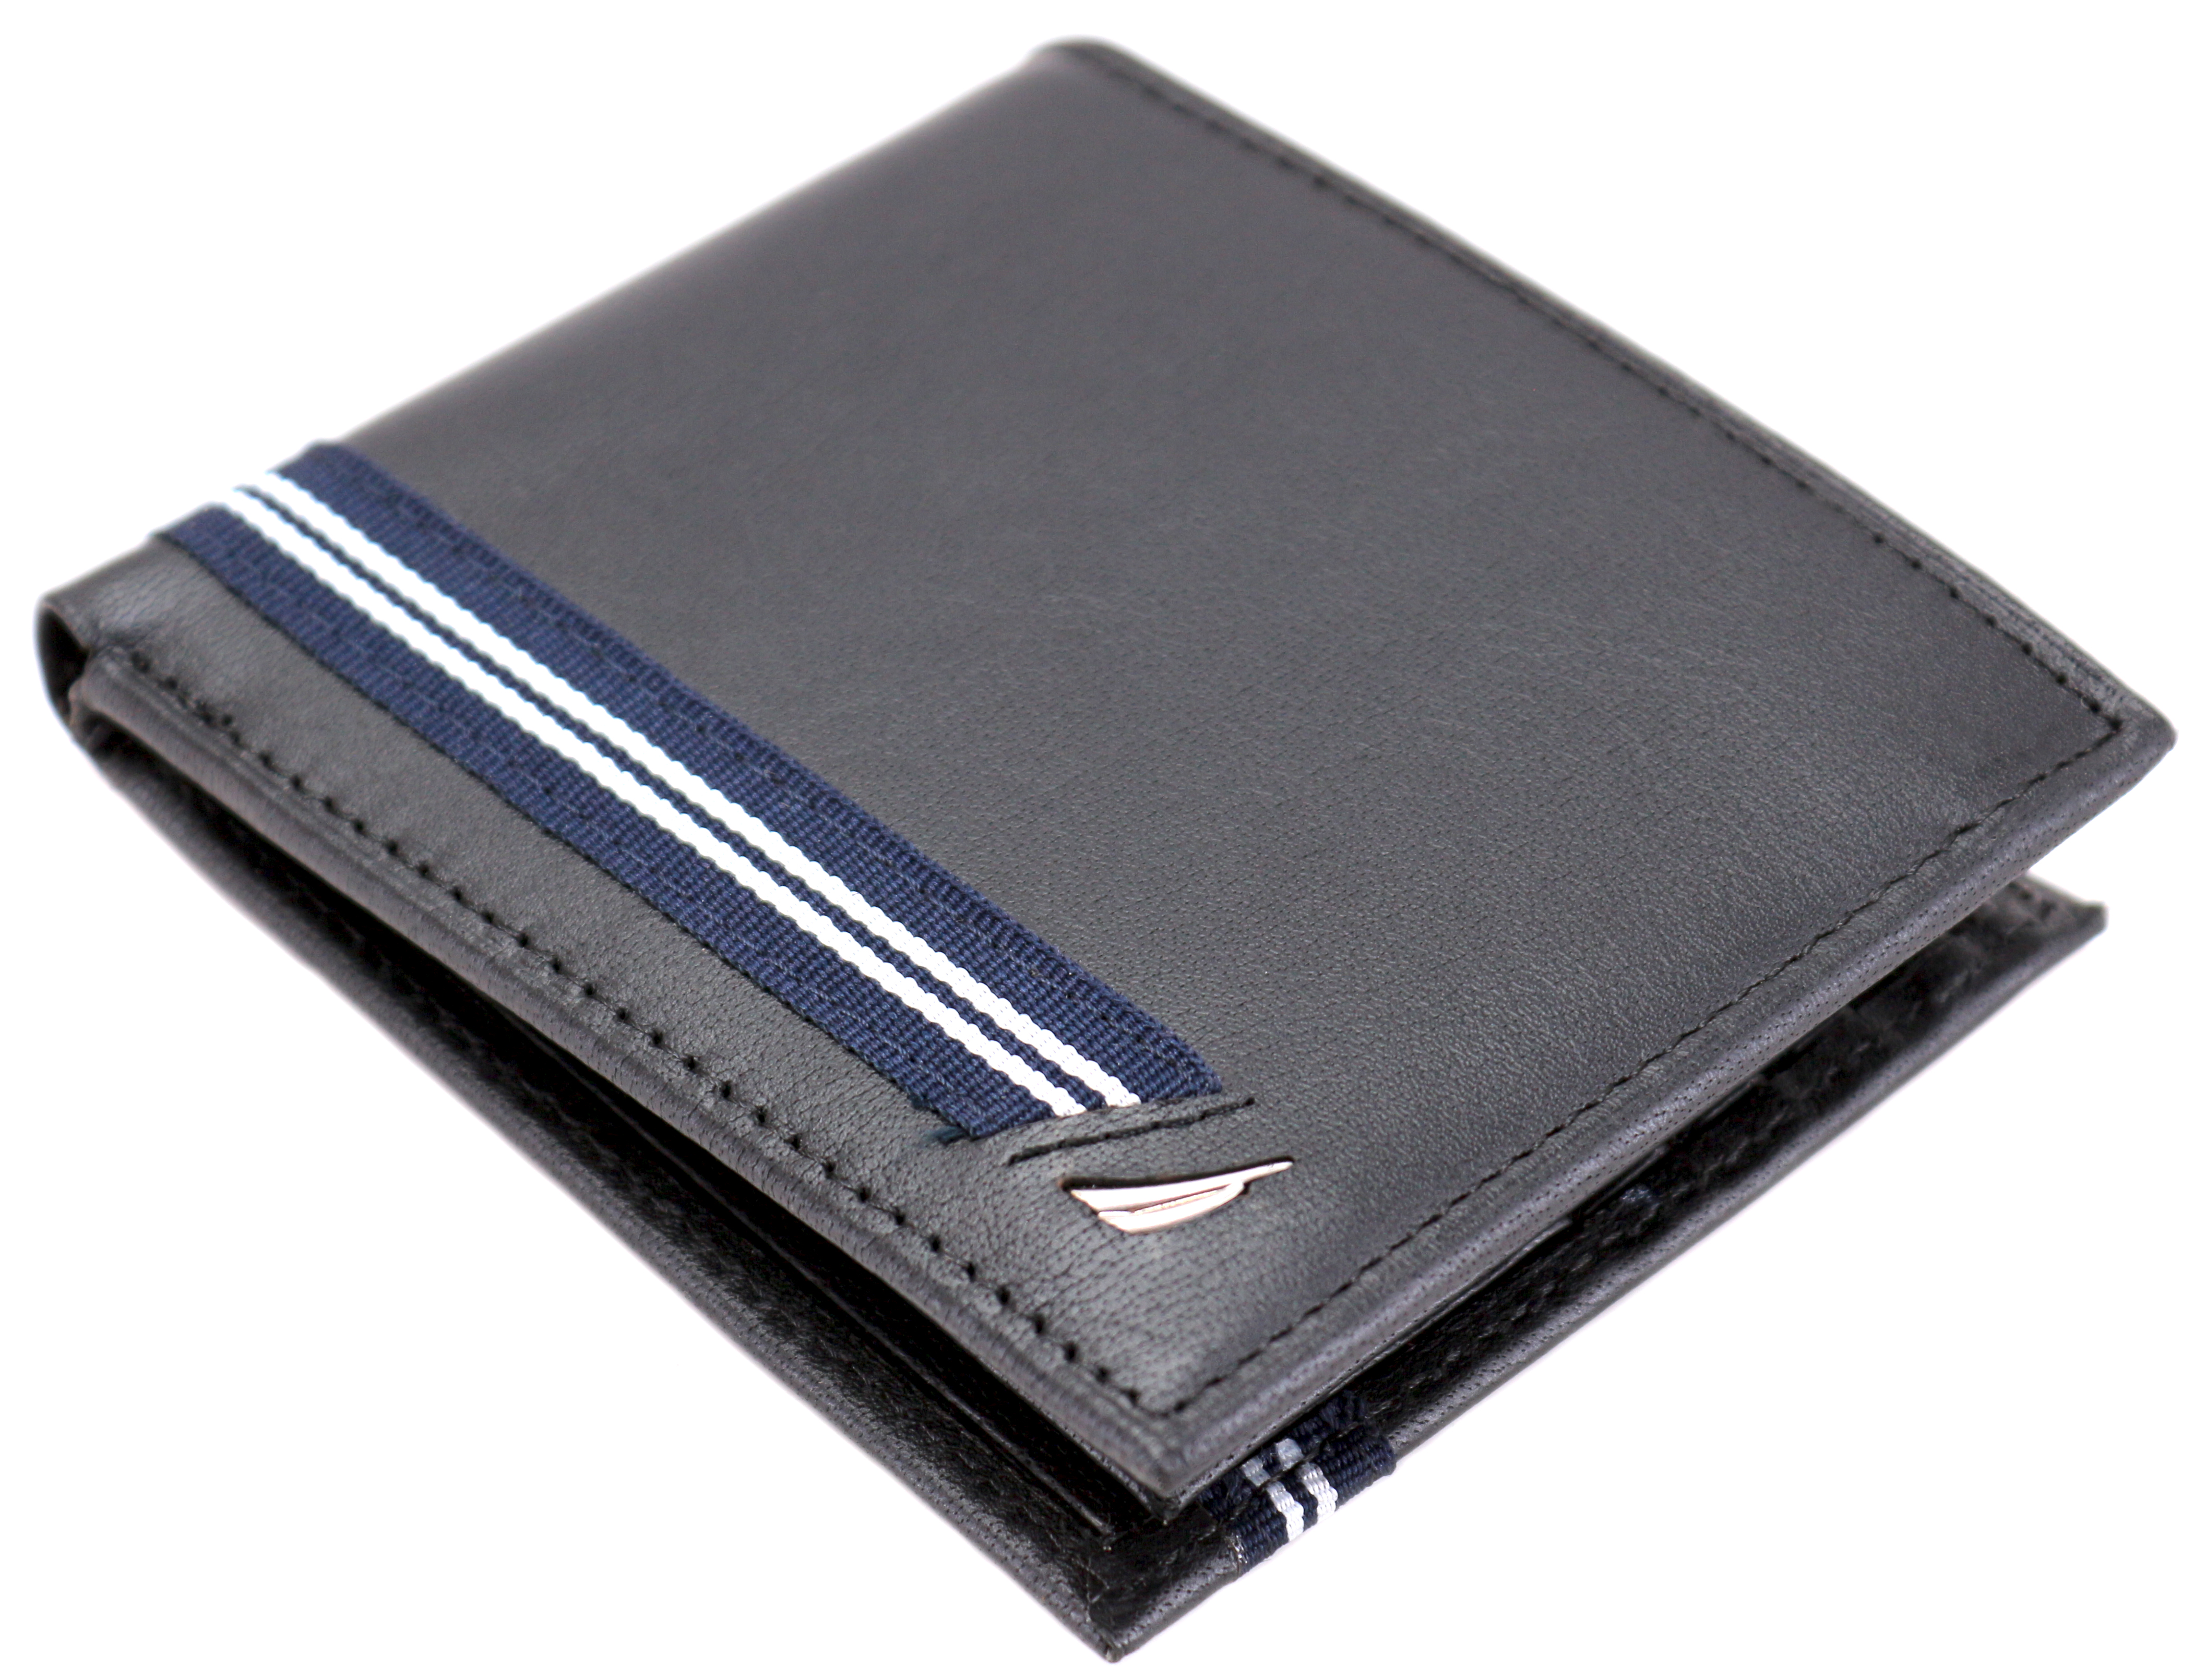 Nautica-Men-039-s-Genuine-Leather-Credit-Card-ID-Double-Billfold-Passcase-Wallet thumbnail 4